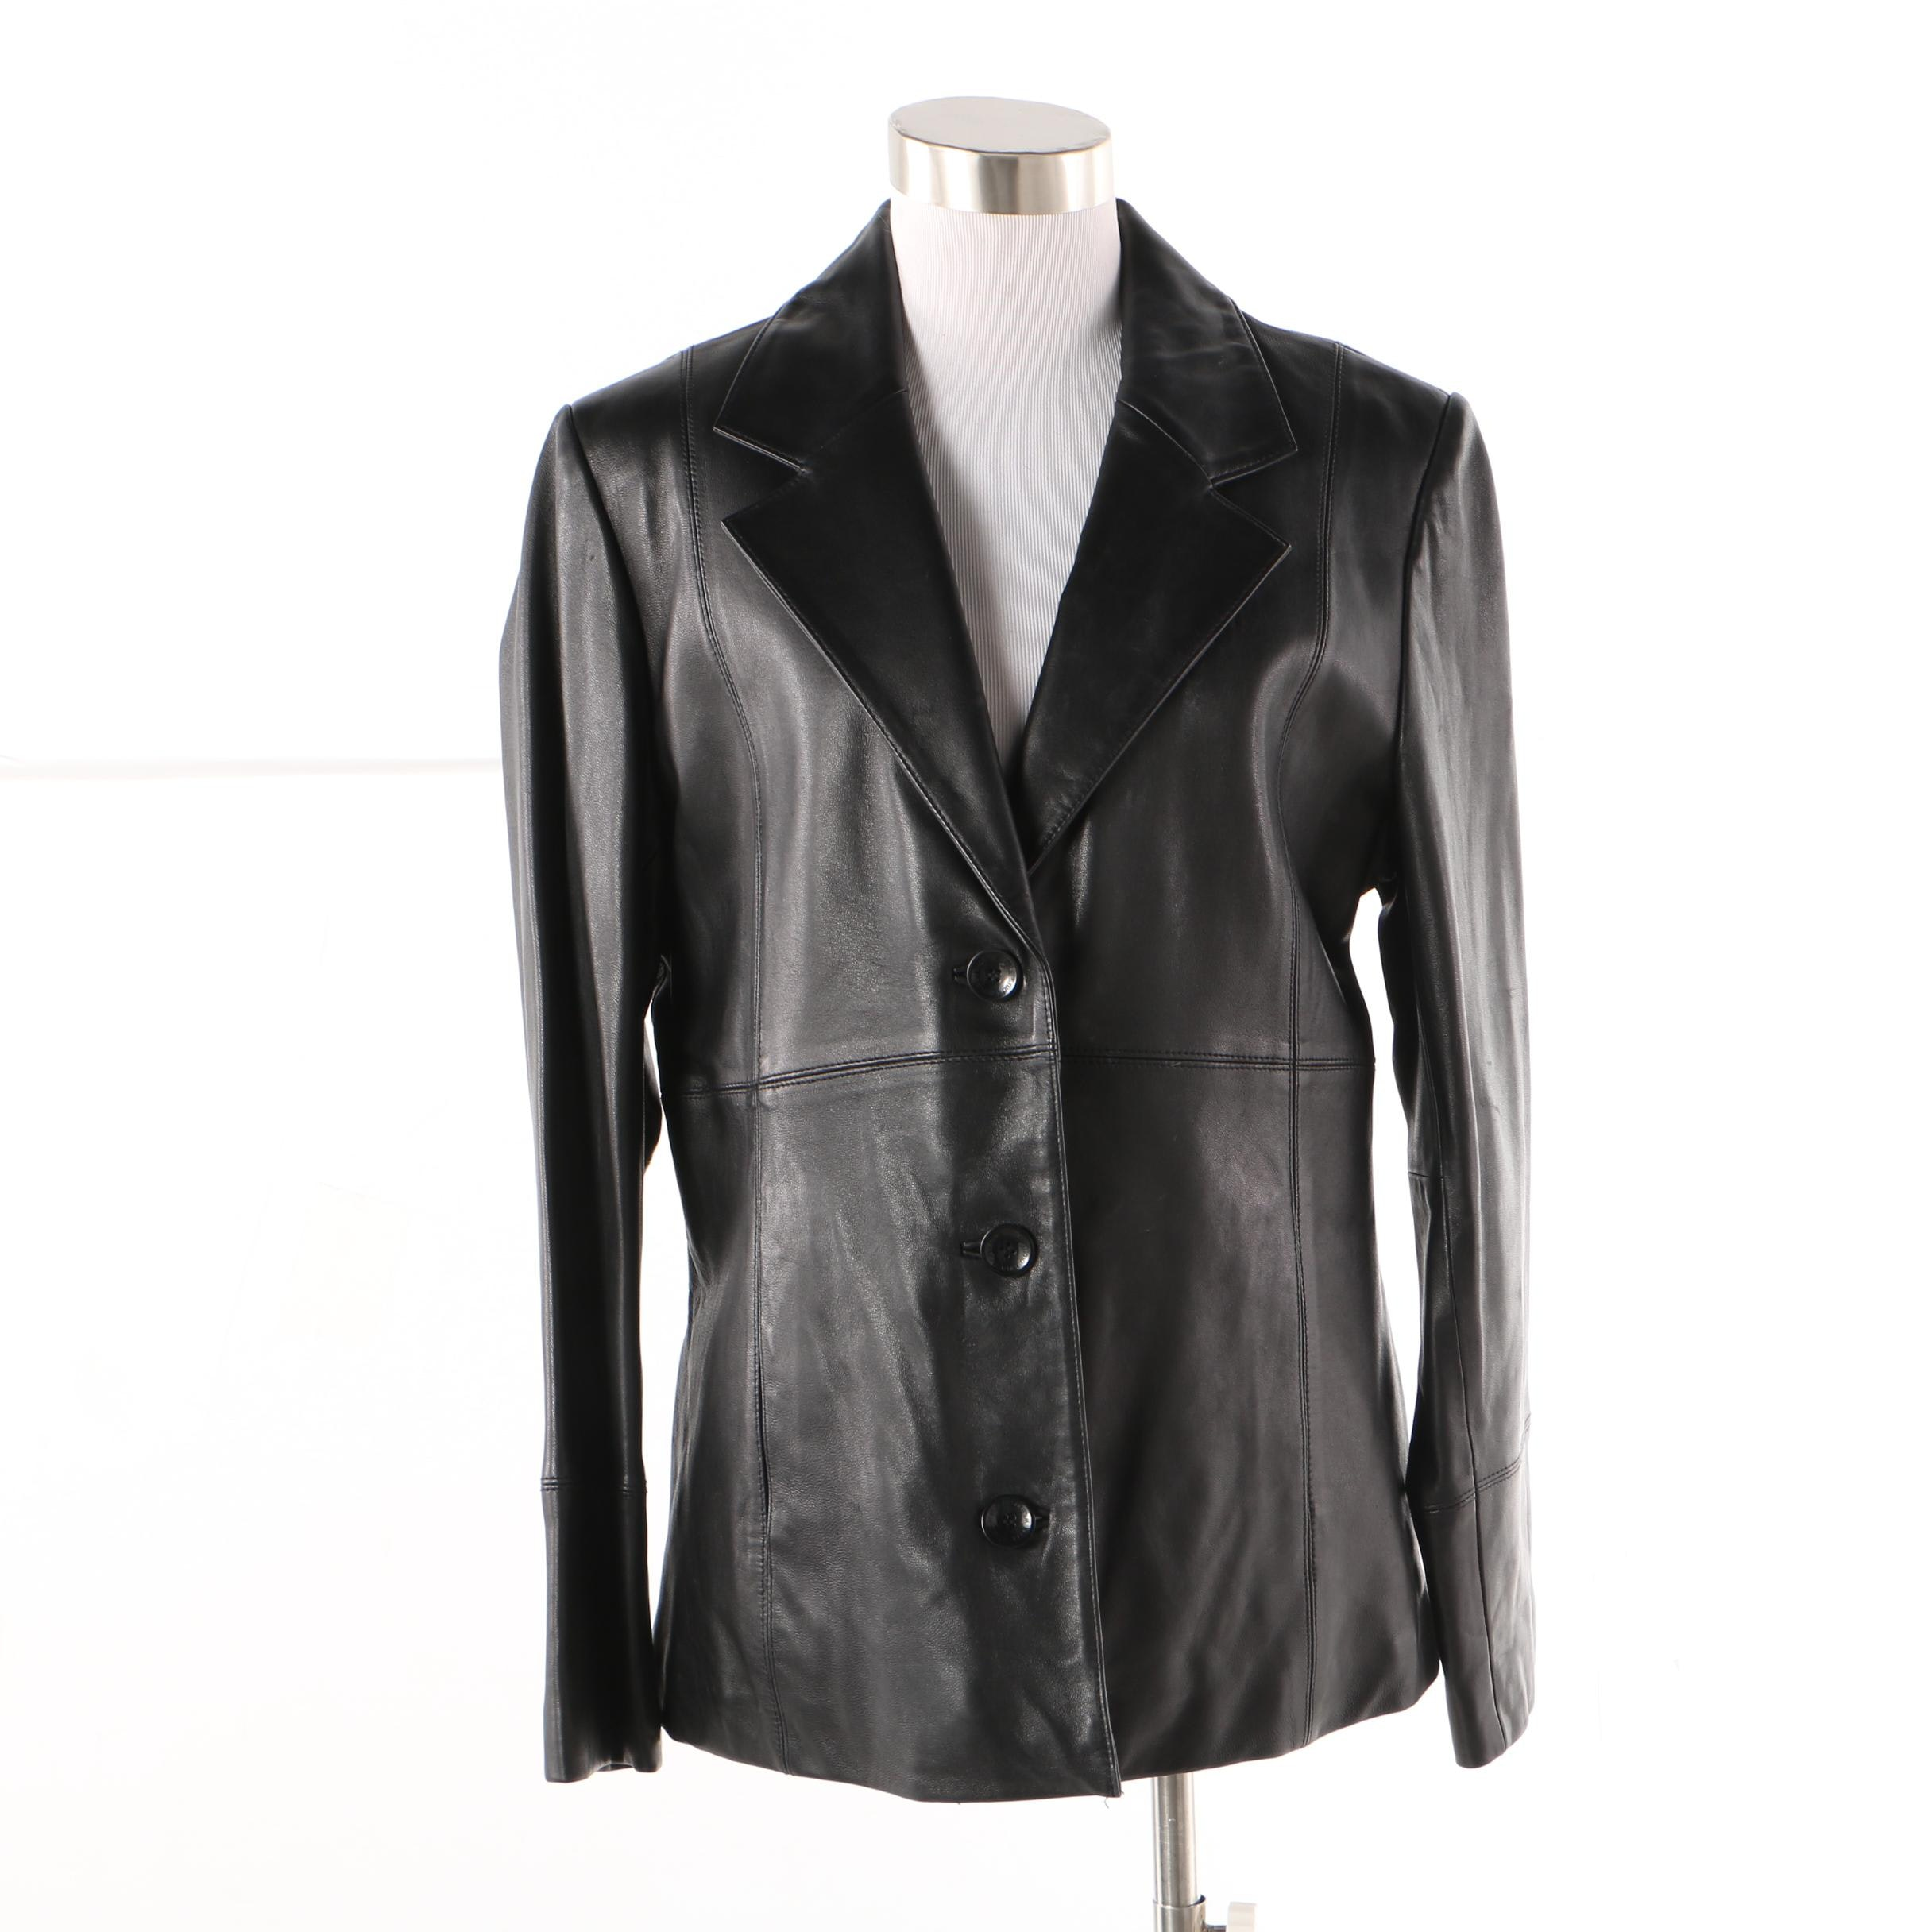 Wilsons Leather Insulated Black Leather Jacket